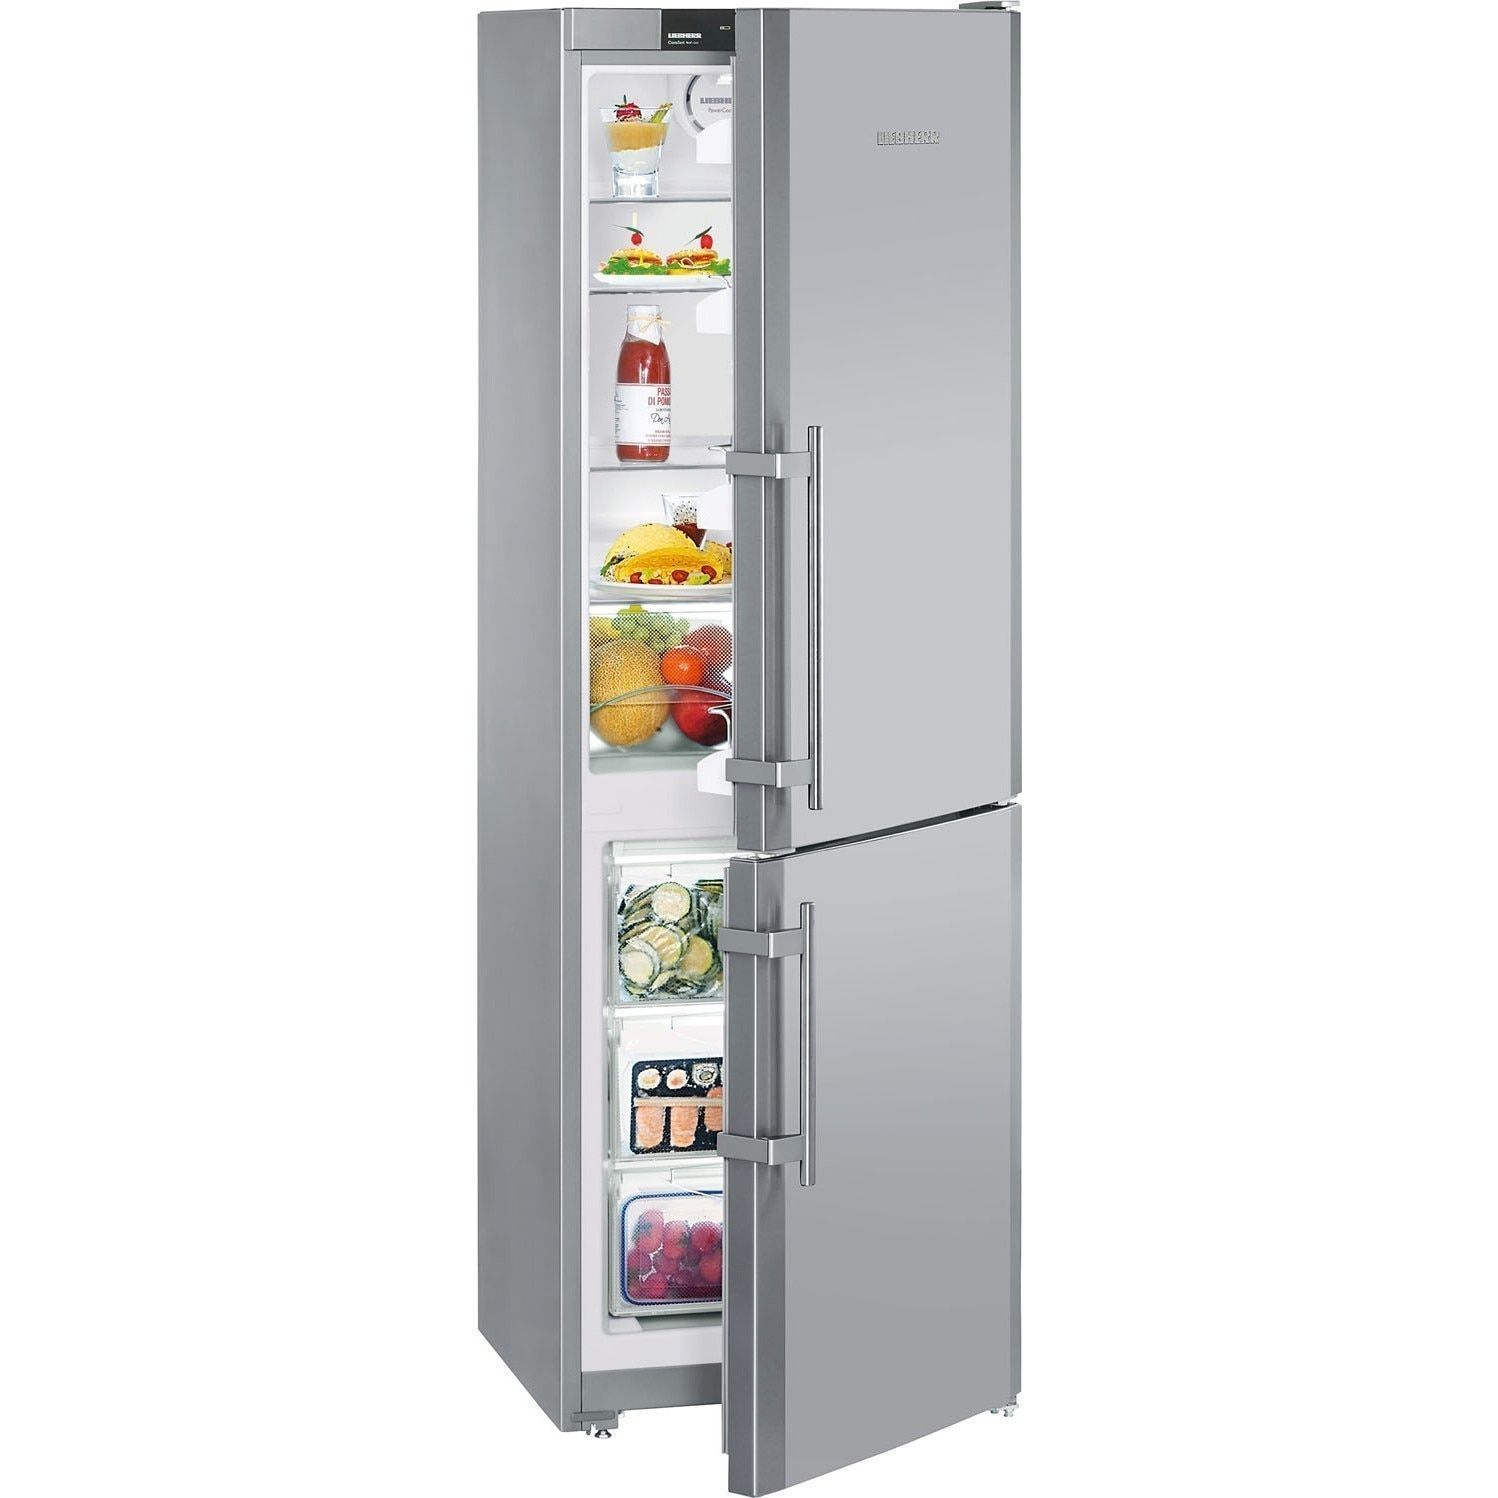 Liebherr 11 4 Cubic Foot Counter Depth Bottom Freezer Refrigerator With Images Counter Depth Refrigerator Bottom Freezer